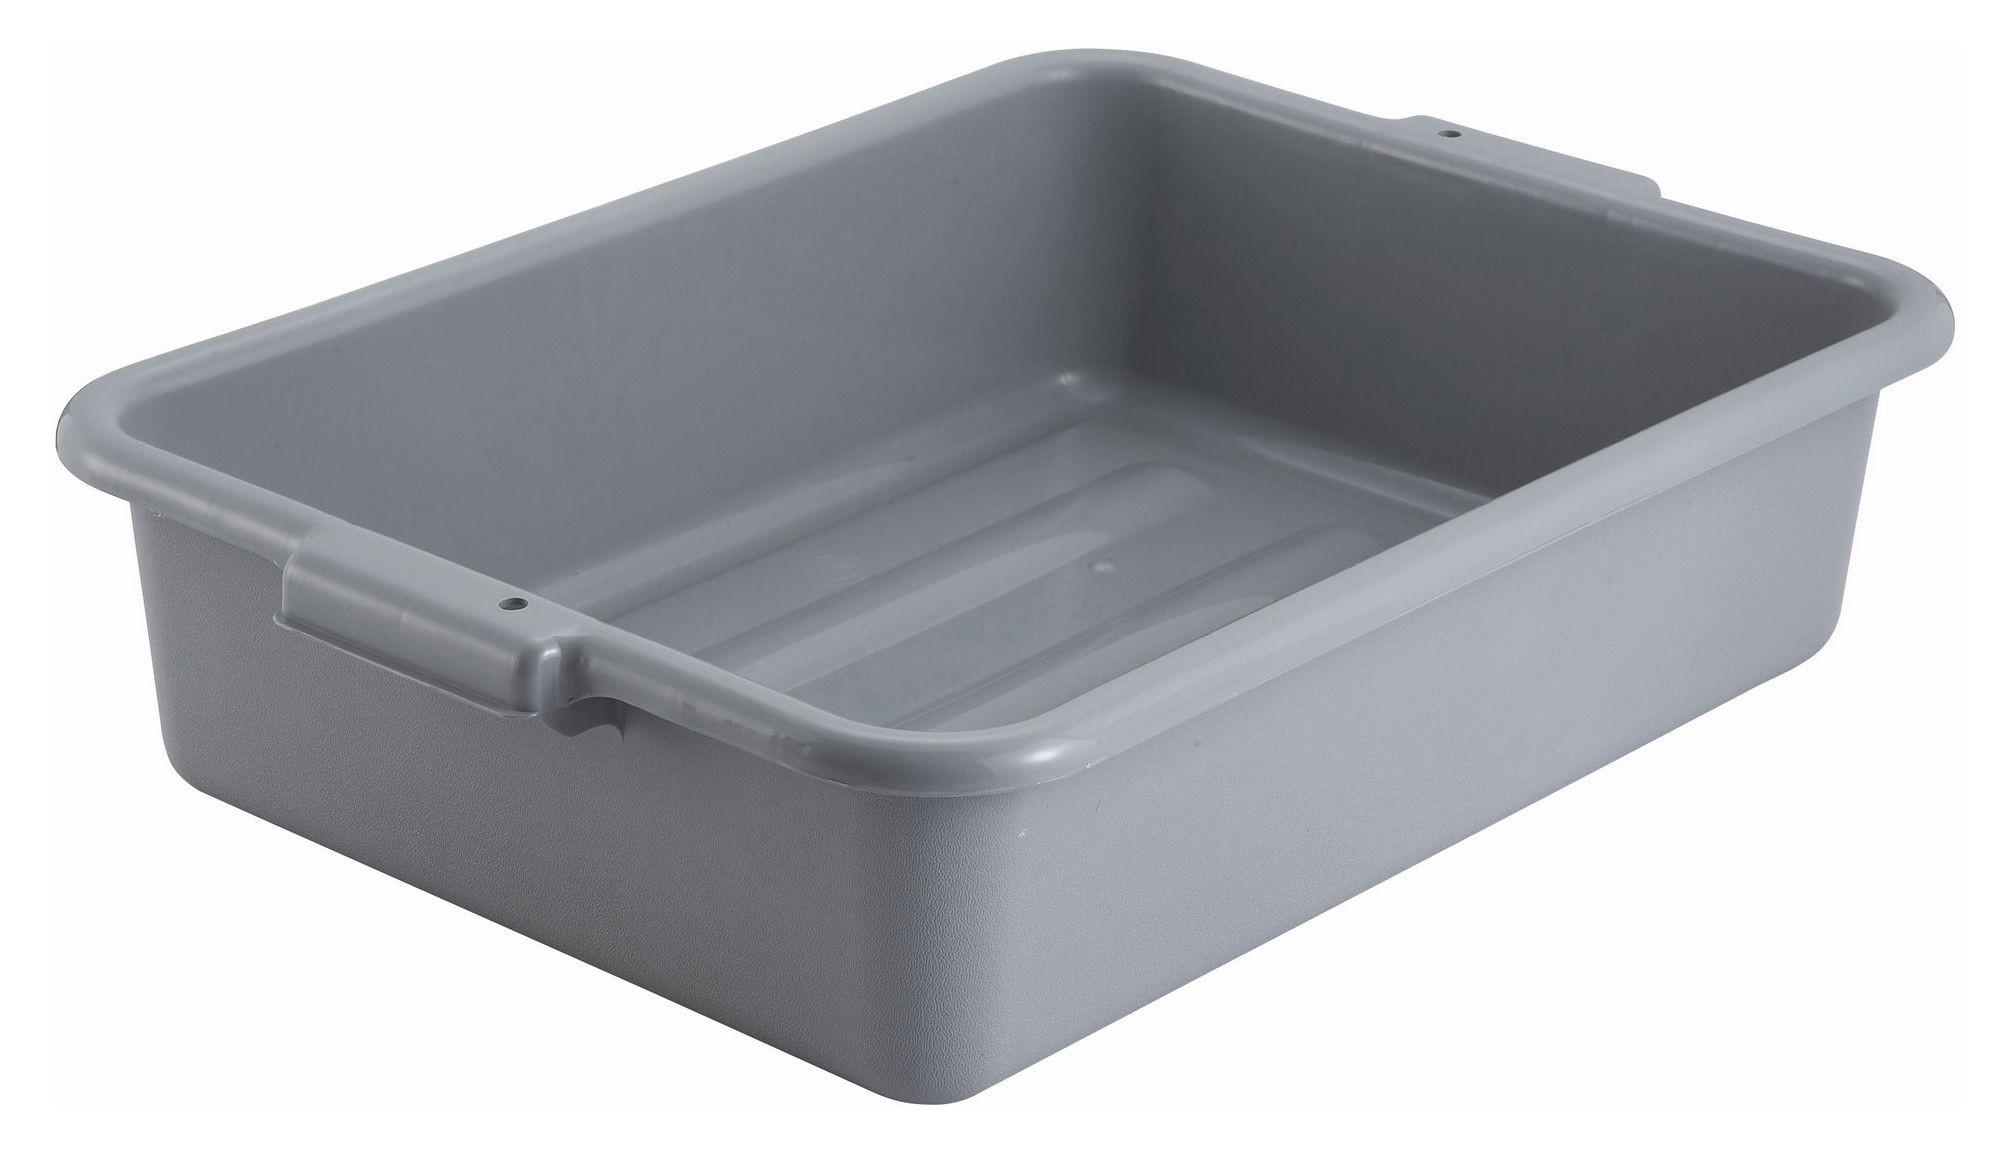 "Winco PL-5G Grey Dish Box 20-1/4"" x 15-1/2"" x 5"""